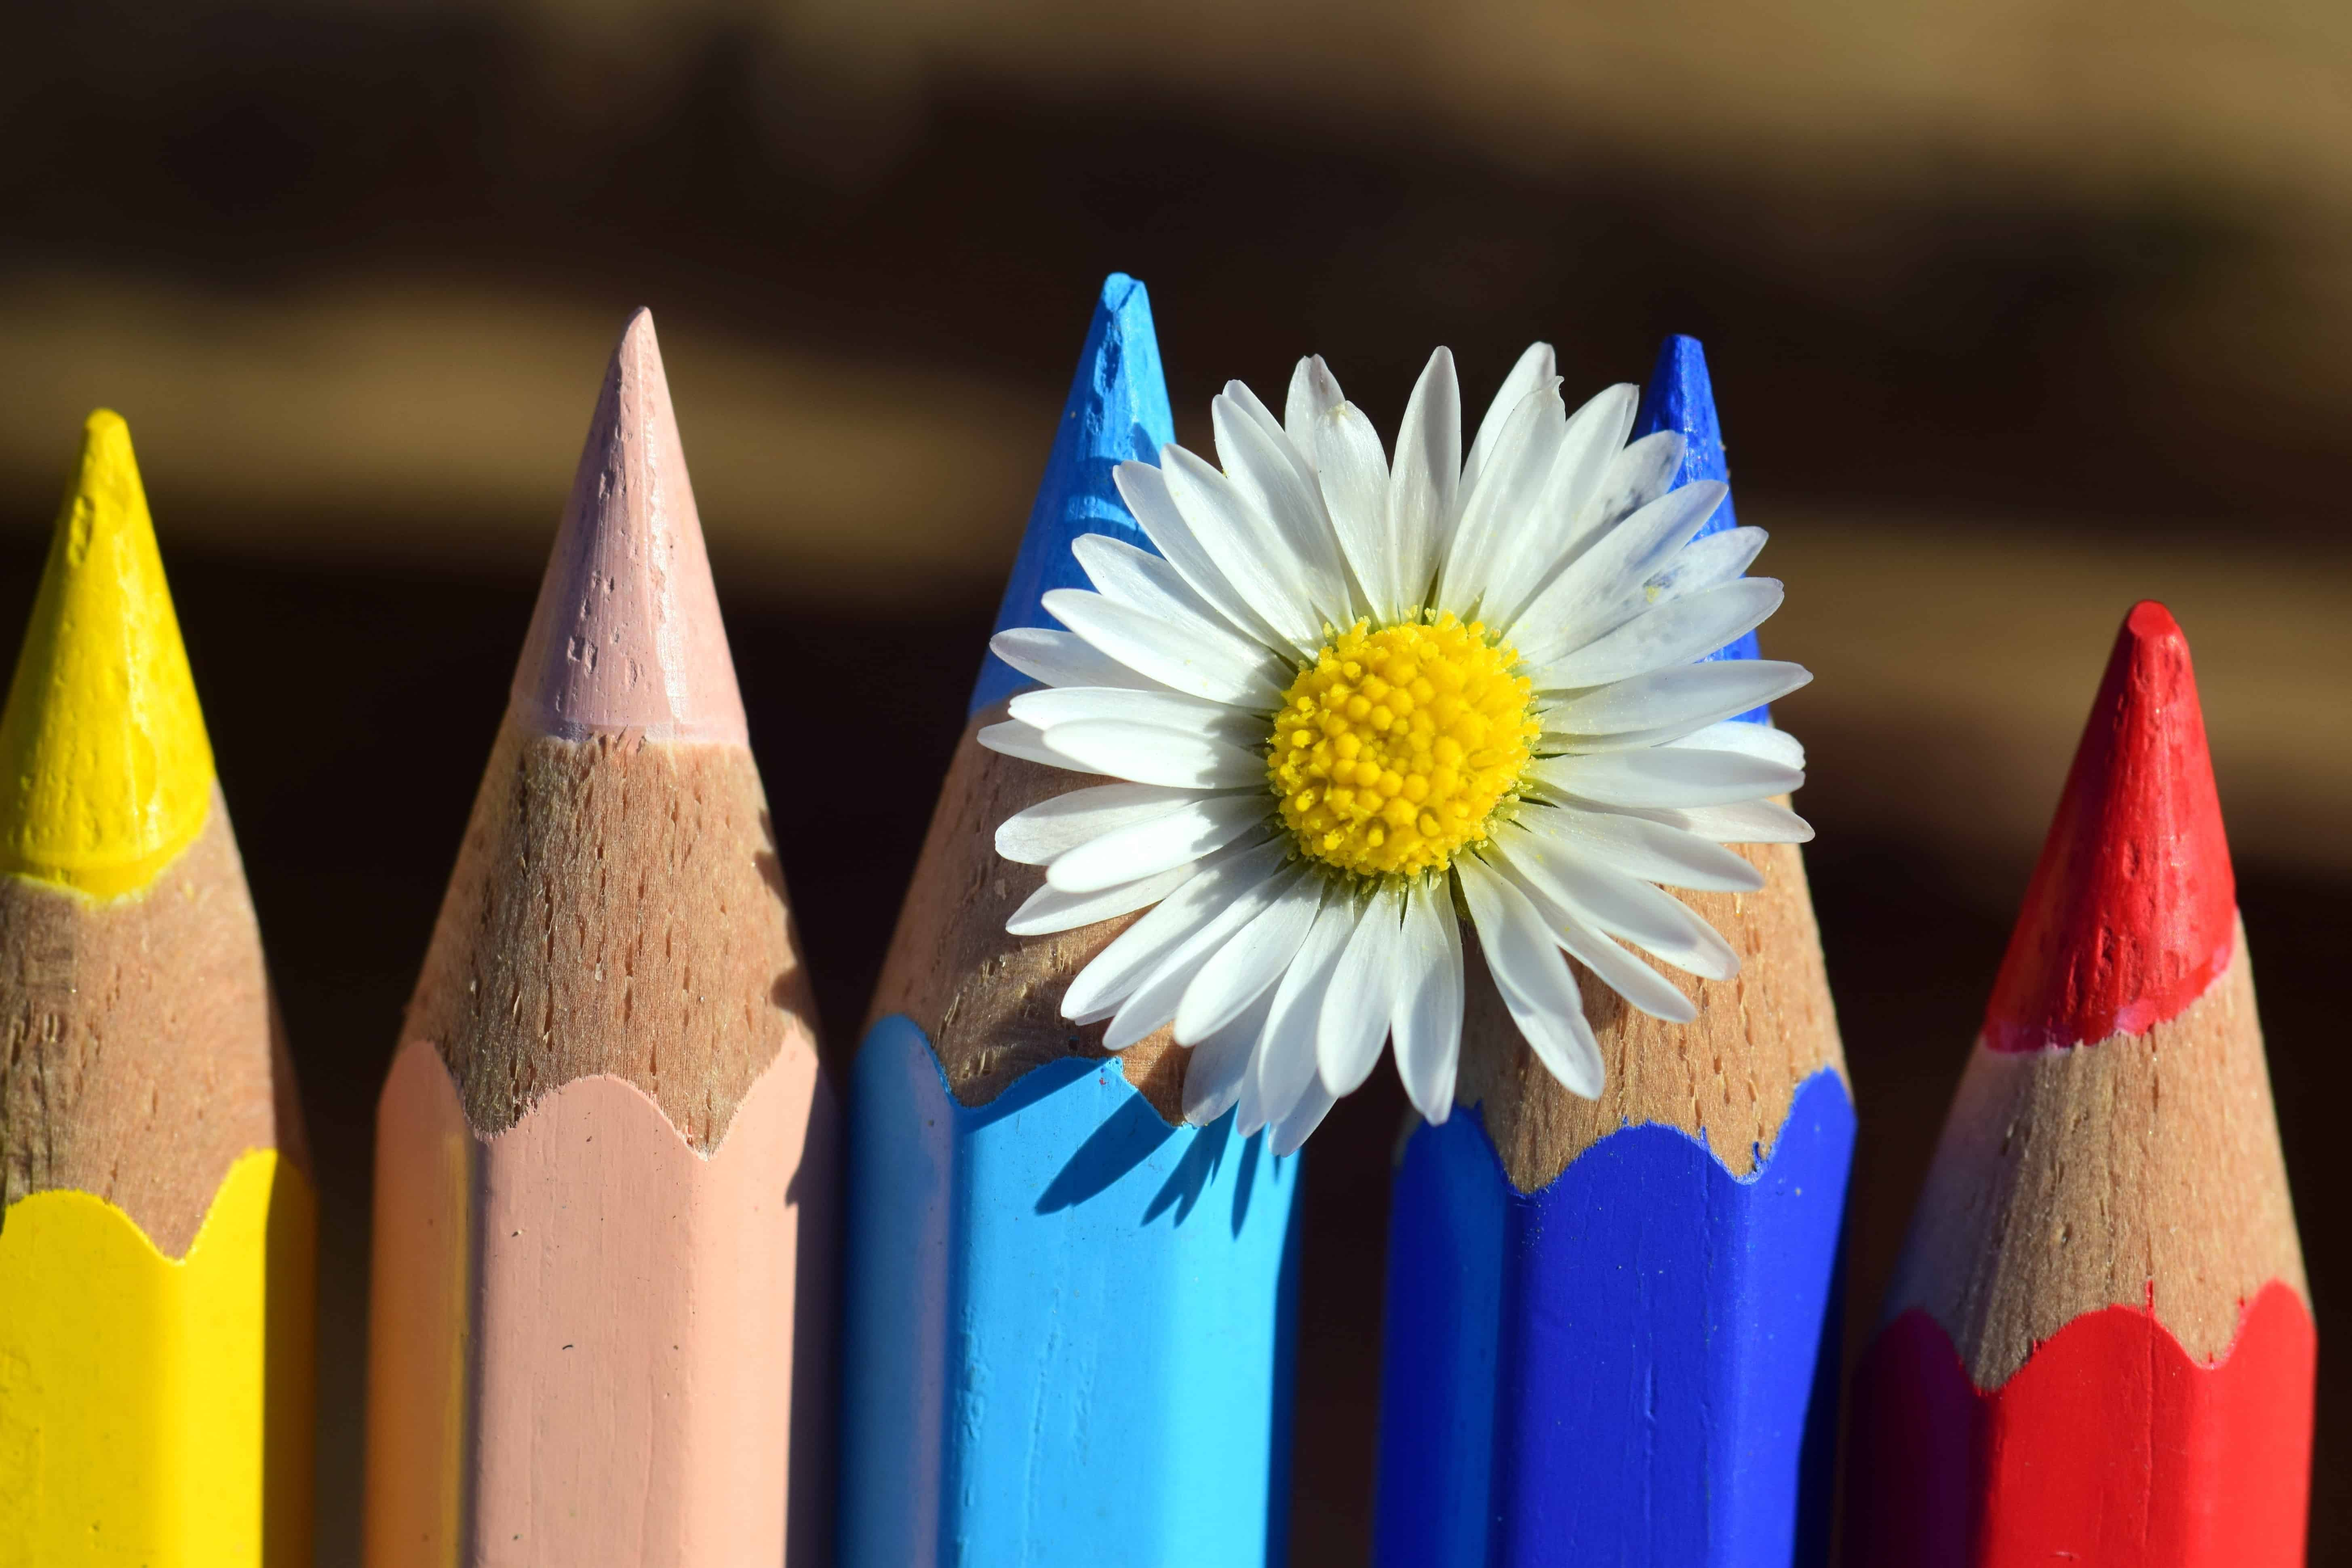 free picture  pencil  education  wood  creativity  flower